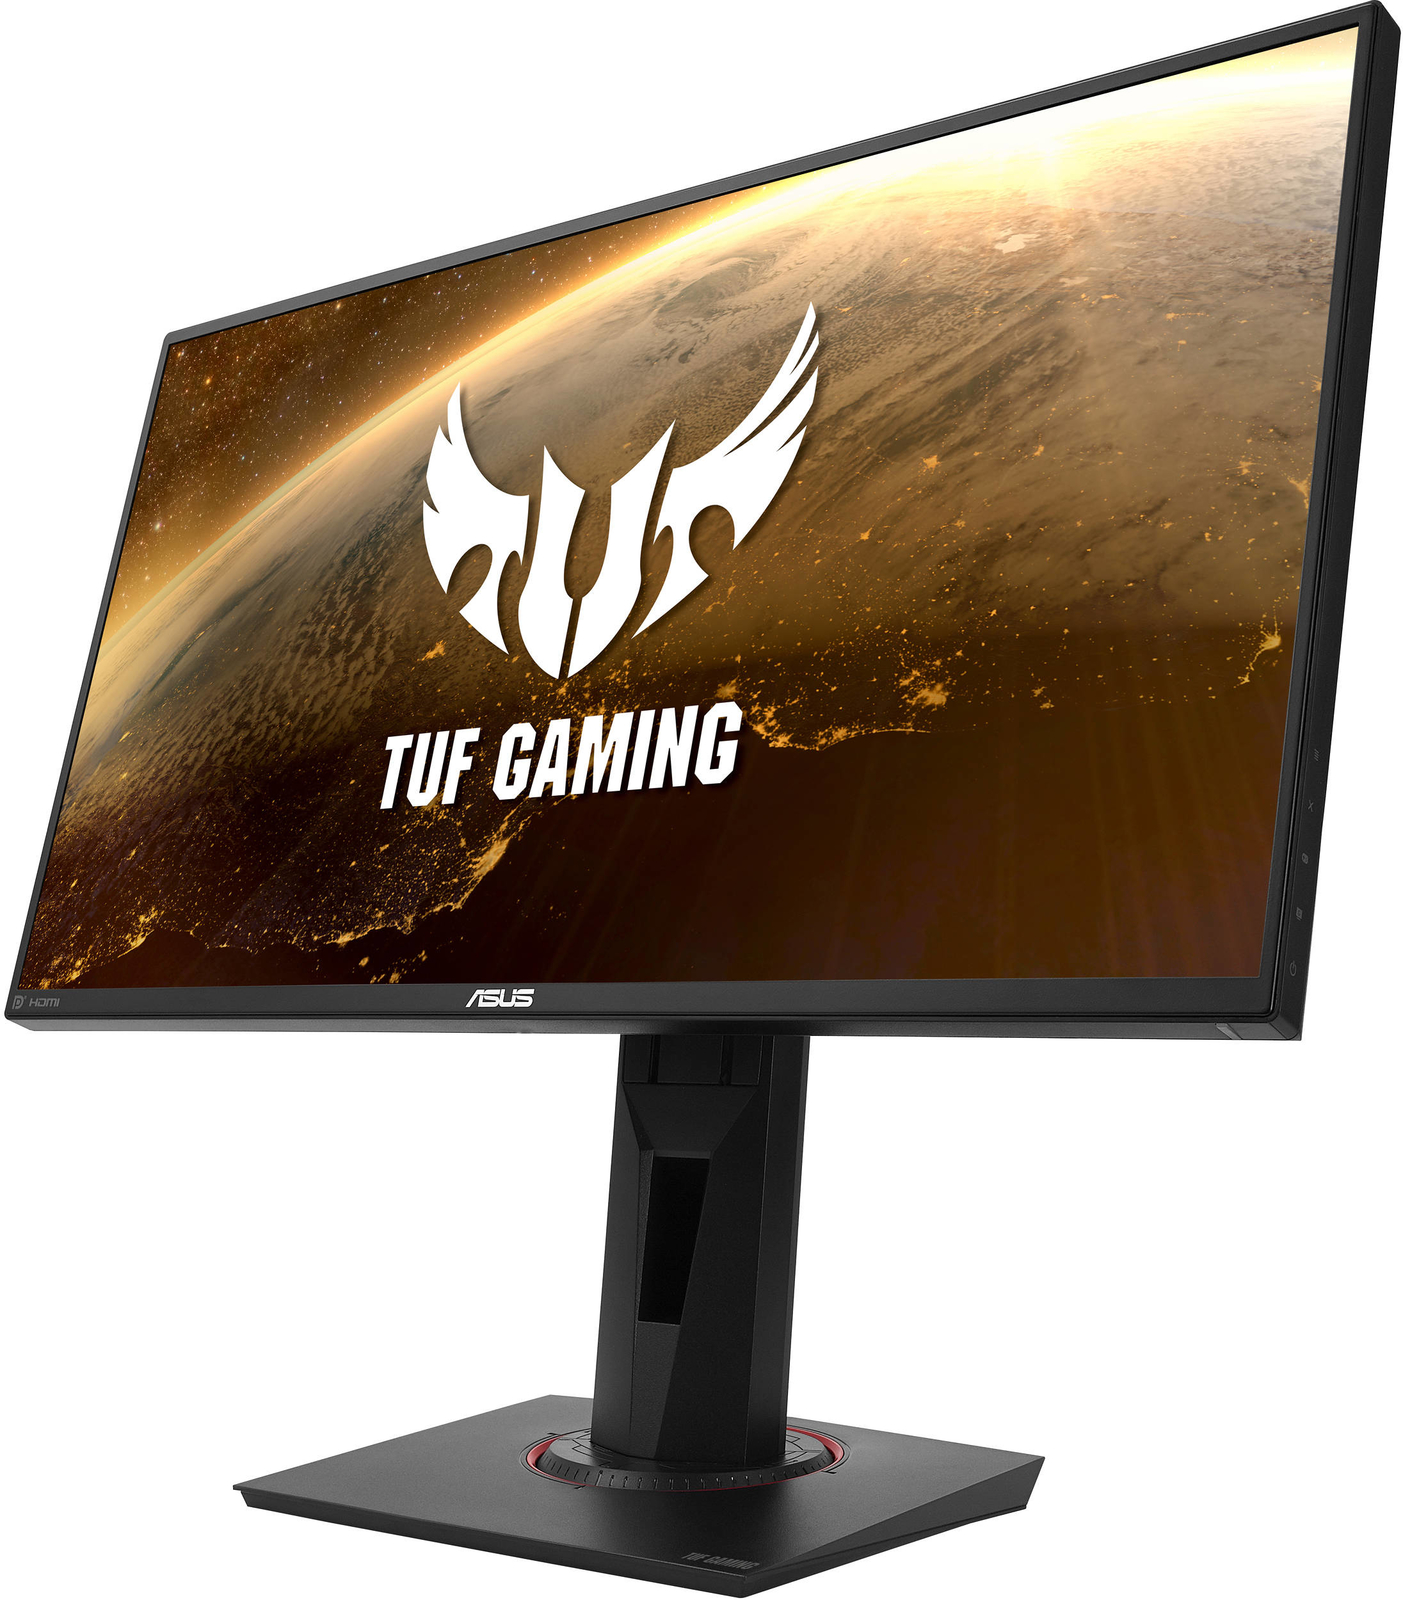 "25"" ASUS TUF Gaming 1080p 144Hz 1ms G-Sync Monitor image"